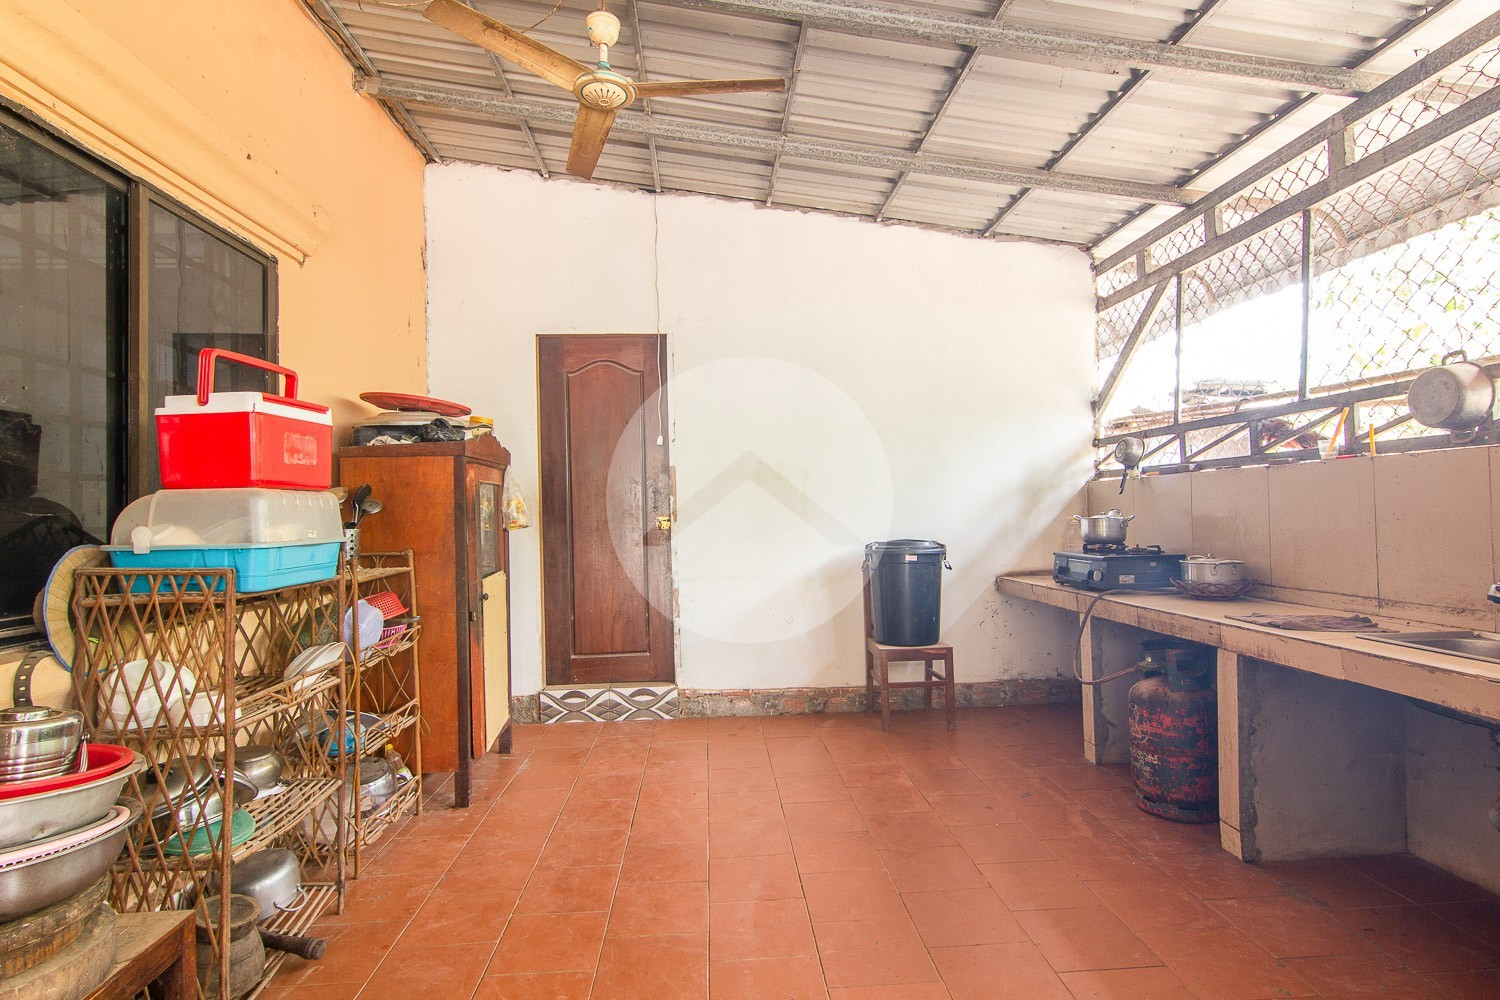 3 Bedroom House For Sale - Sra Ngae, Siem Reap